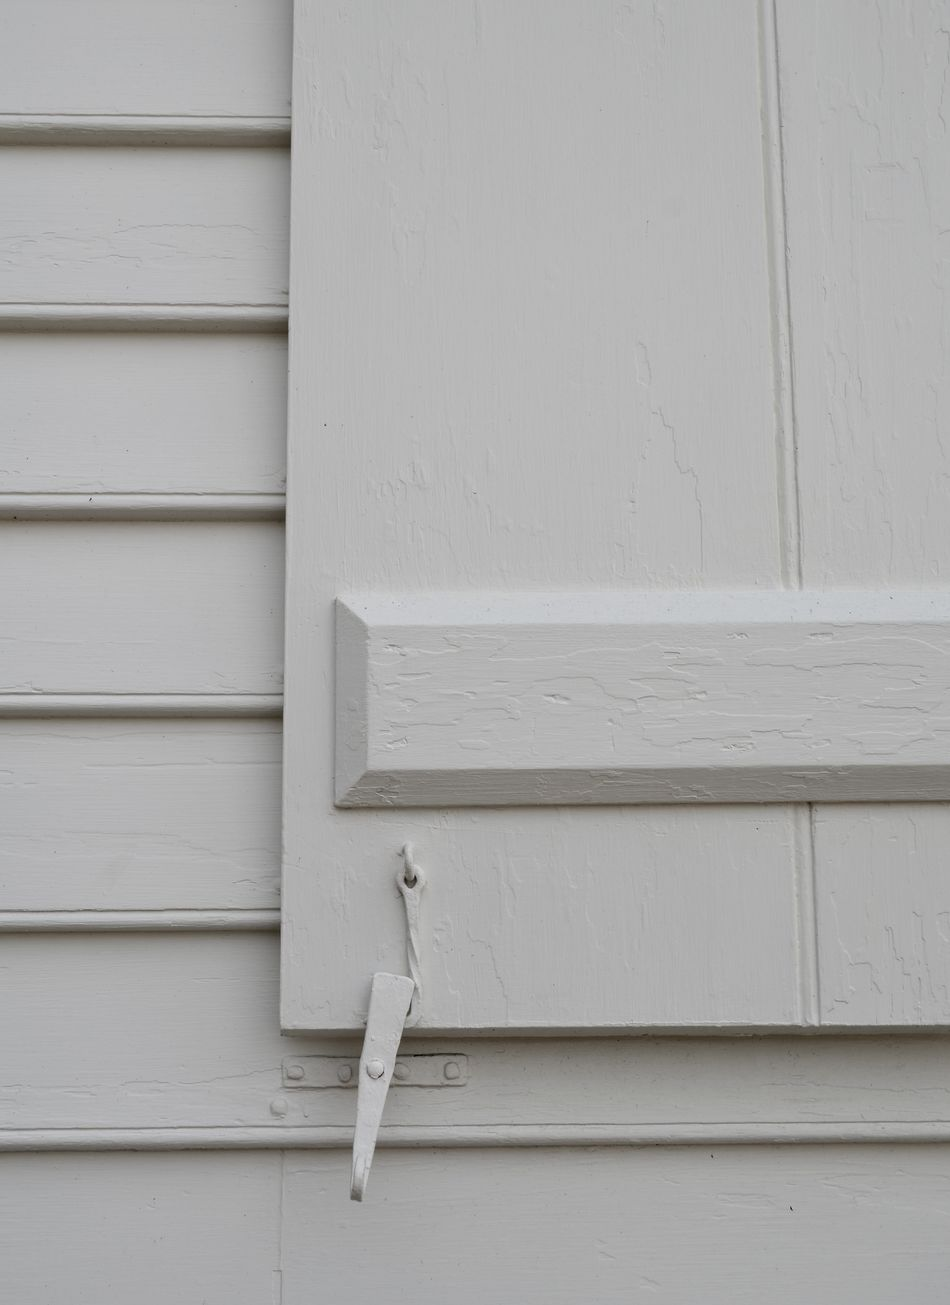 White on white shutter on building Architecture Close-up Day No People Outdoors Pjpink Shutter Shutter Dog White Color White On White Wooden Art Is Everywhere